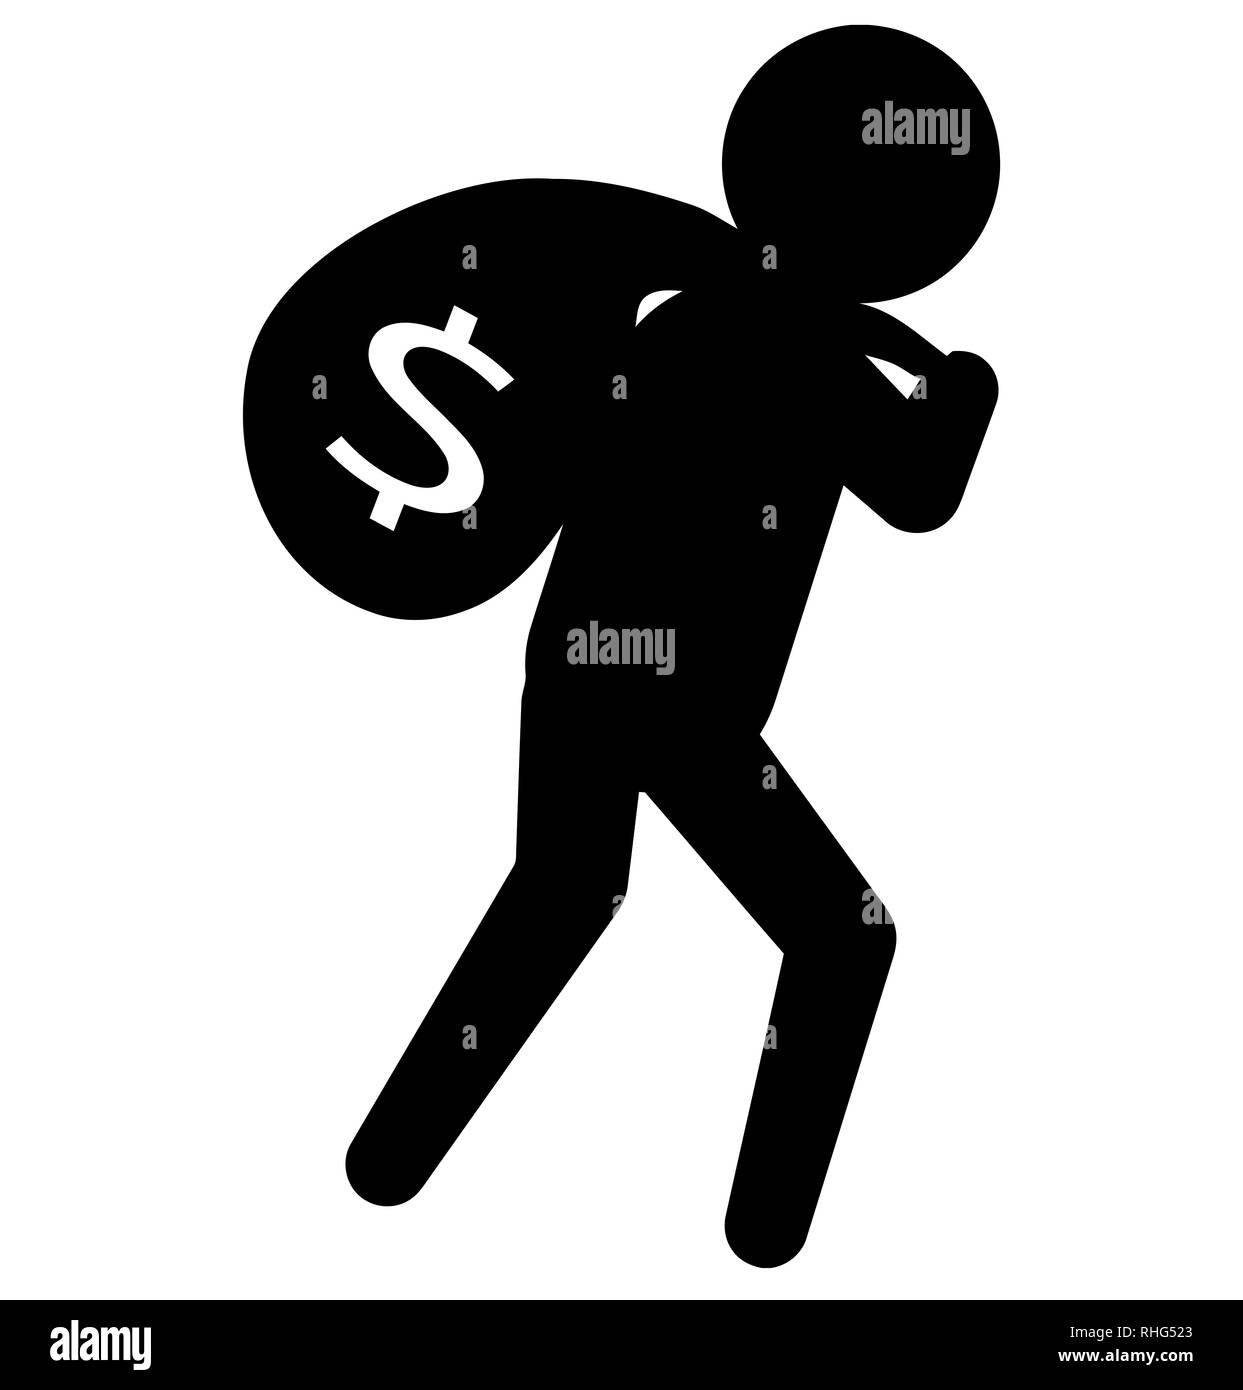 theft carrying bag crime black silhouette illustration - Stock Image